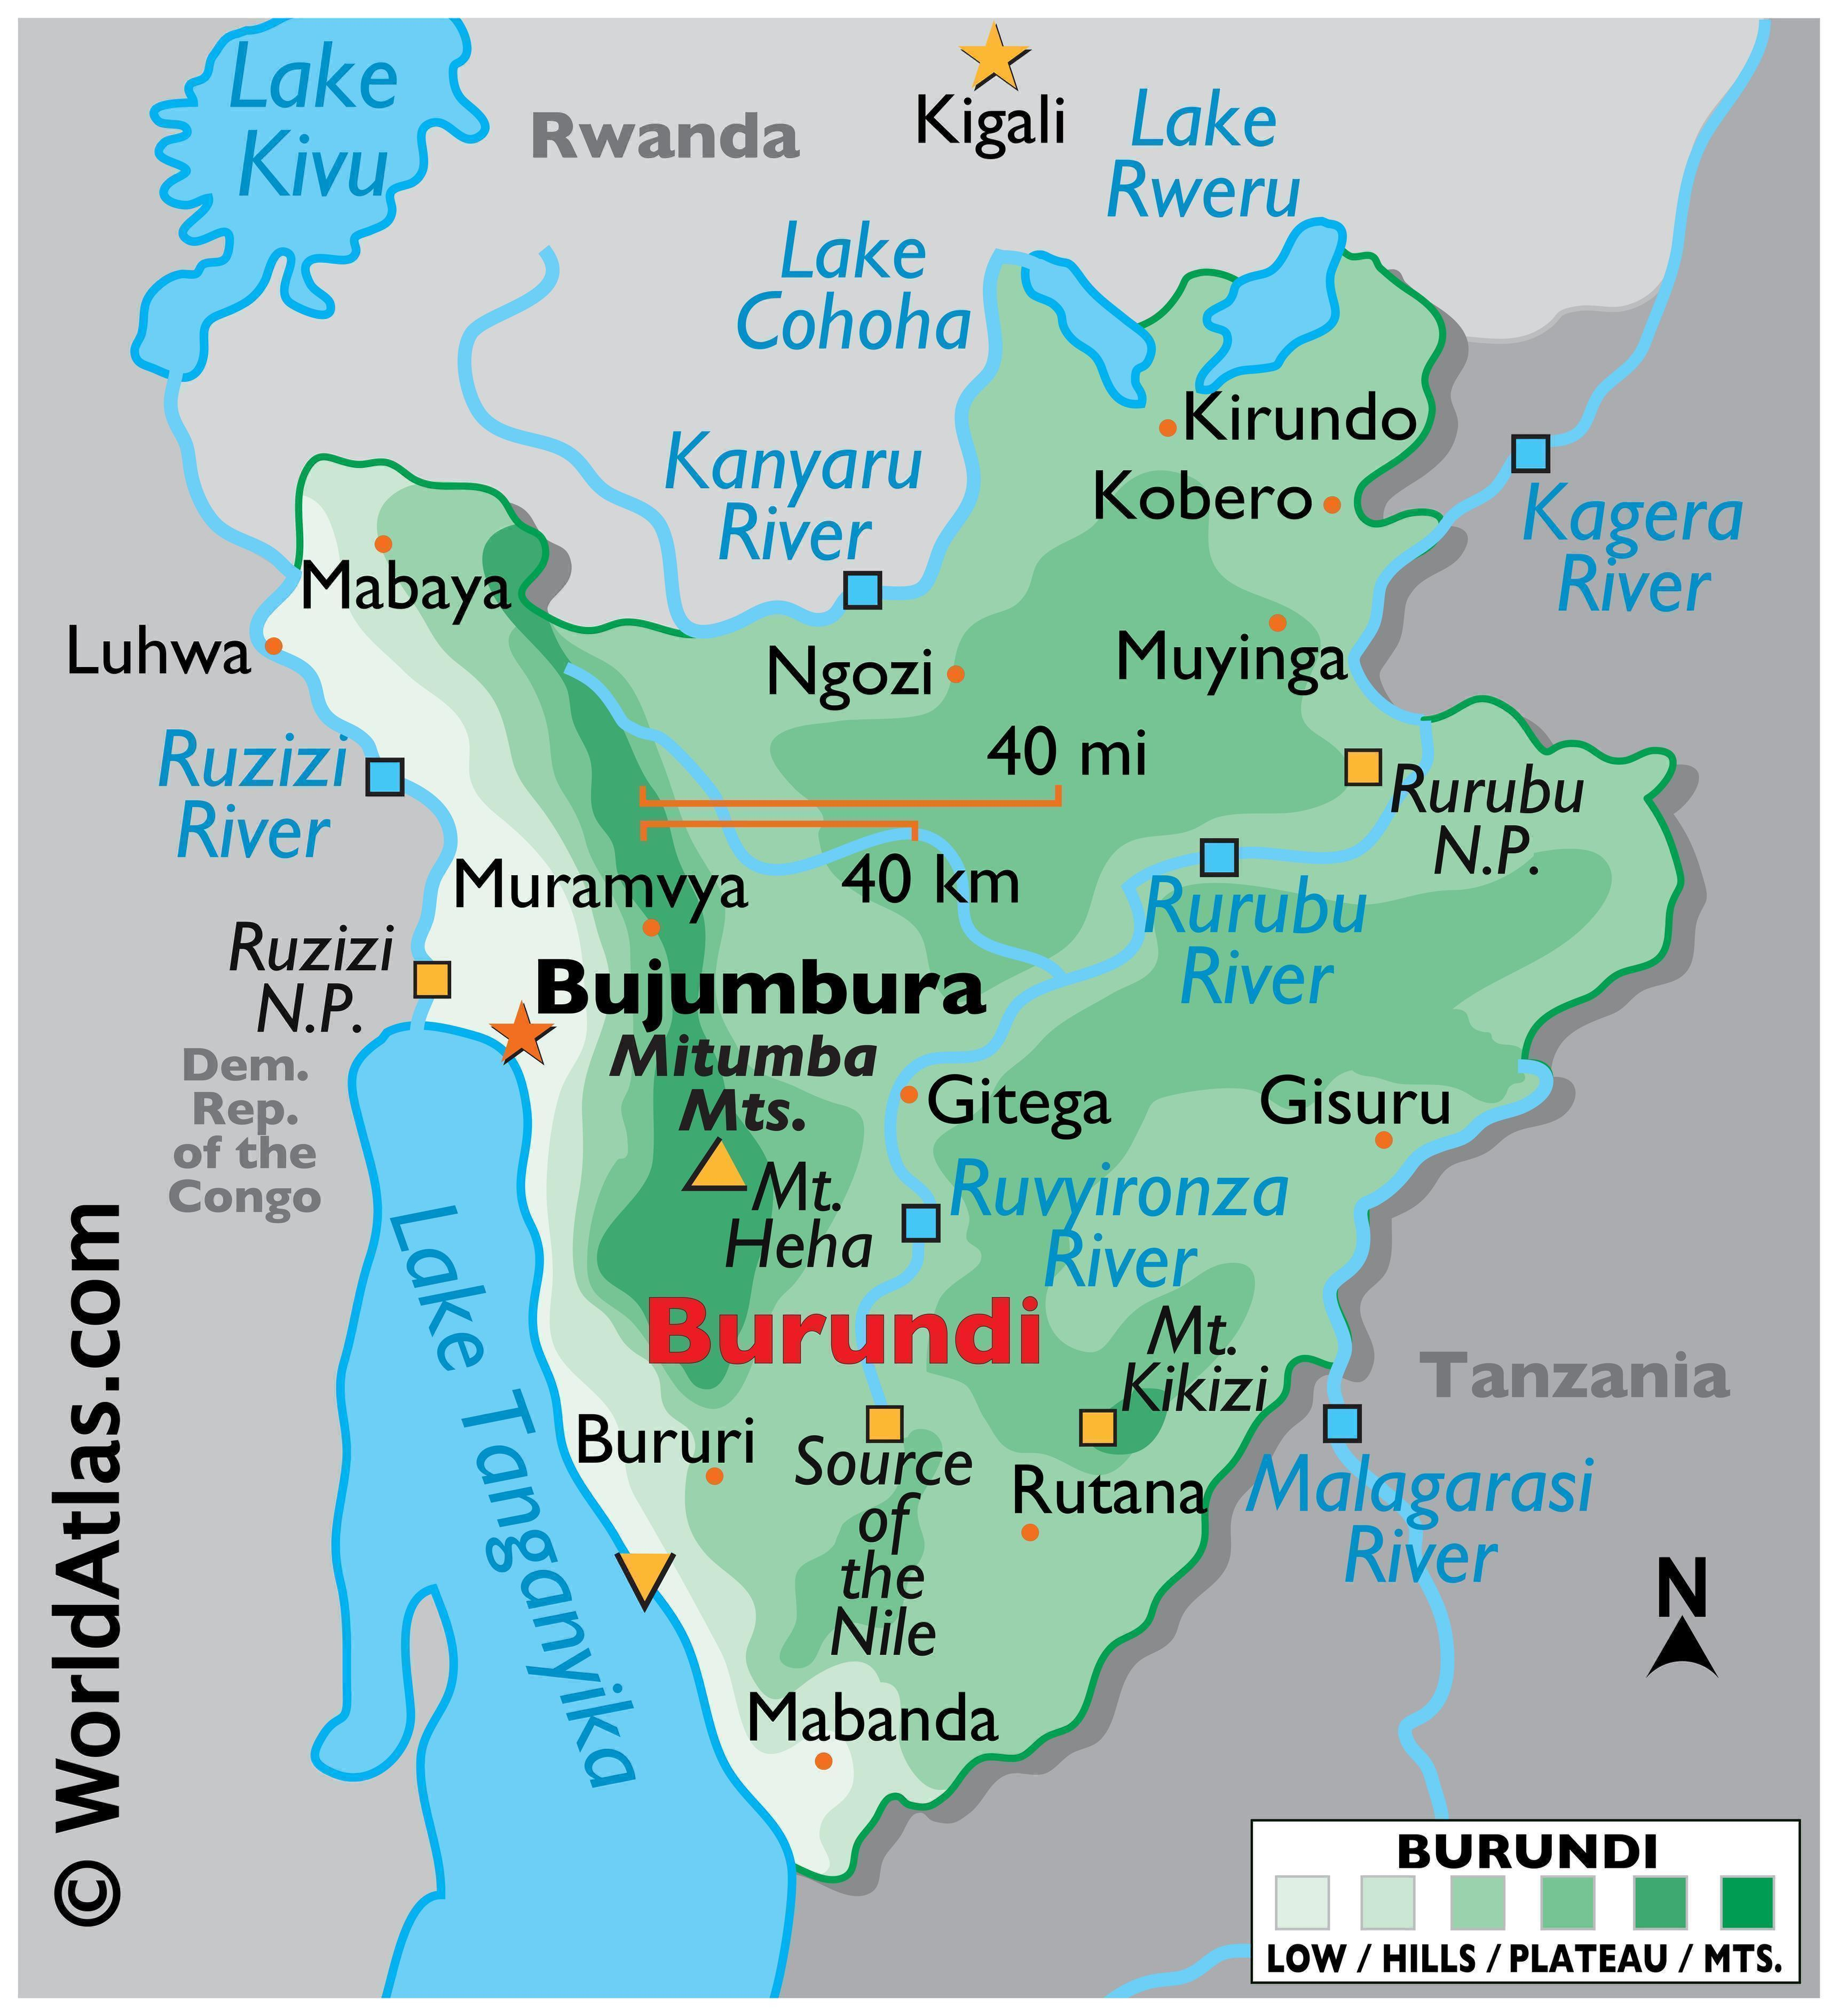 Physical Map of Burundi with state boundaries. Details the relief, physical features of the country, including mountain ranges, various bodies of water such as the Lake Tanganyika, major rivers, cities, extreme points, etc.